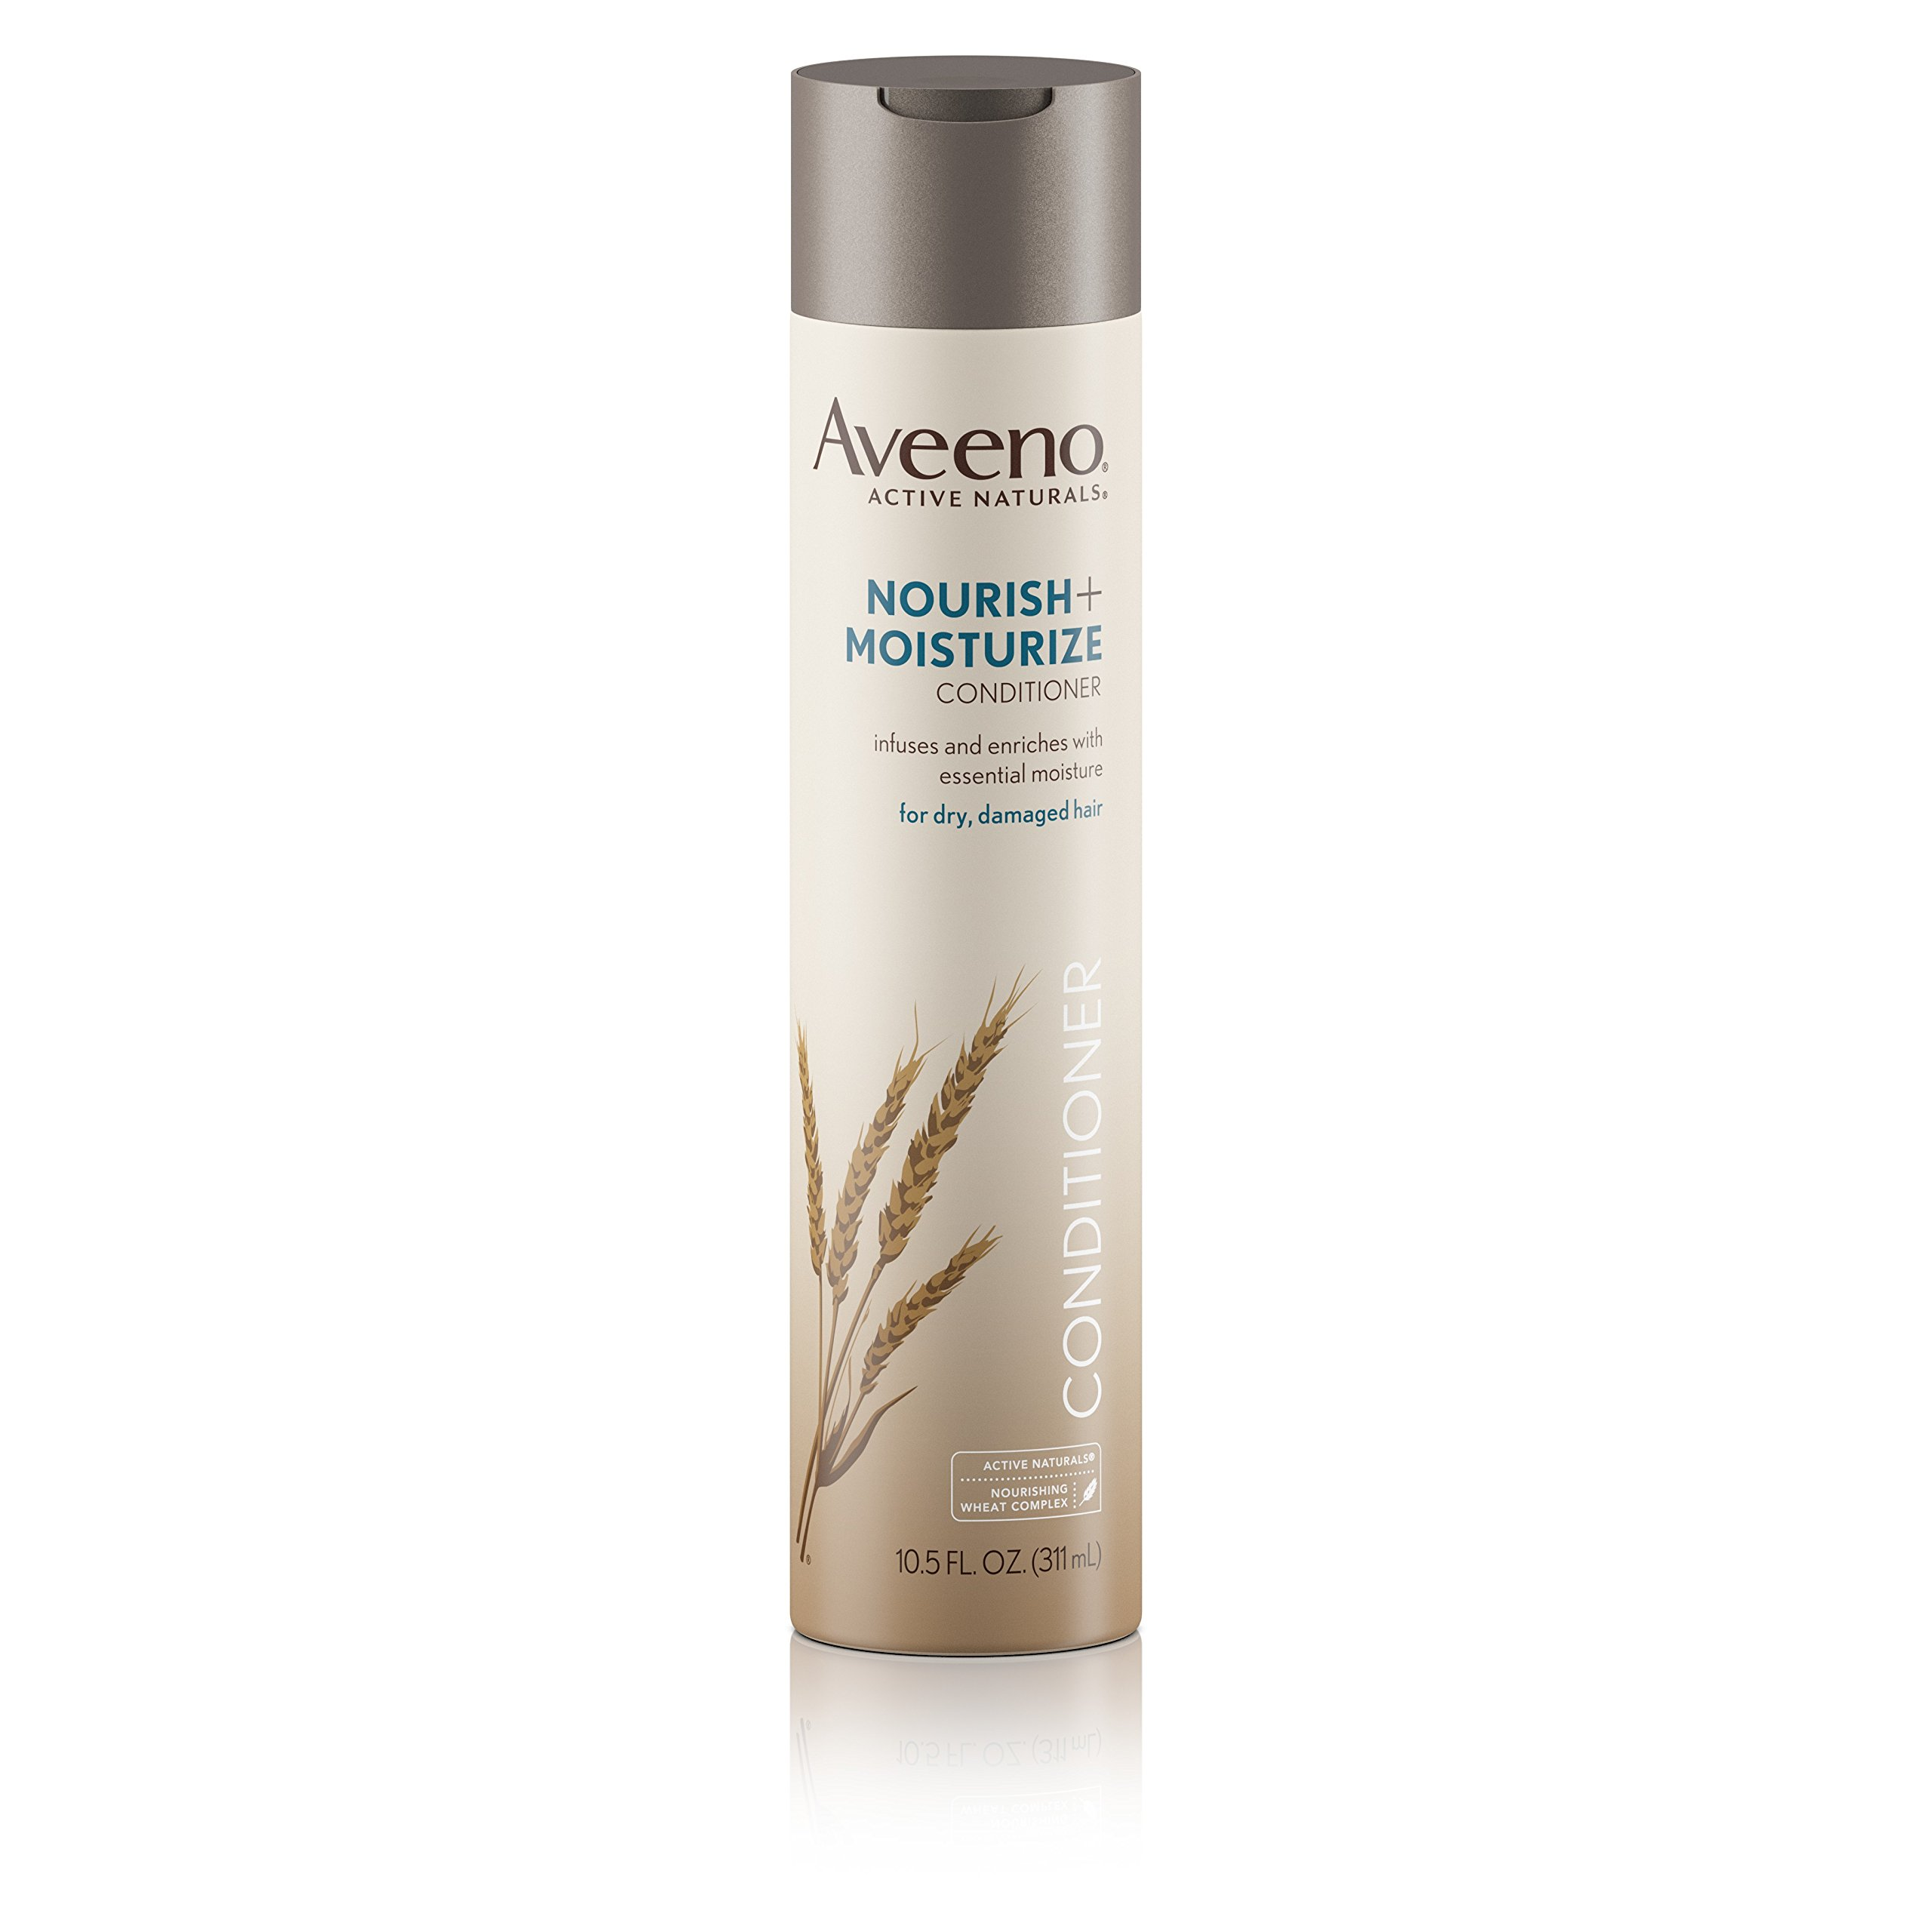 aveeno leave in conditioner review